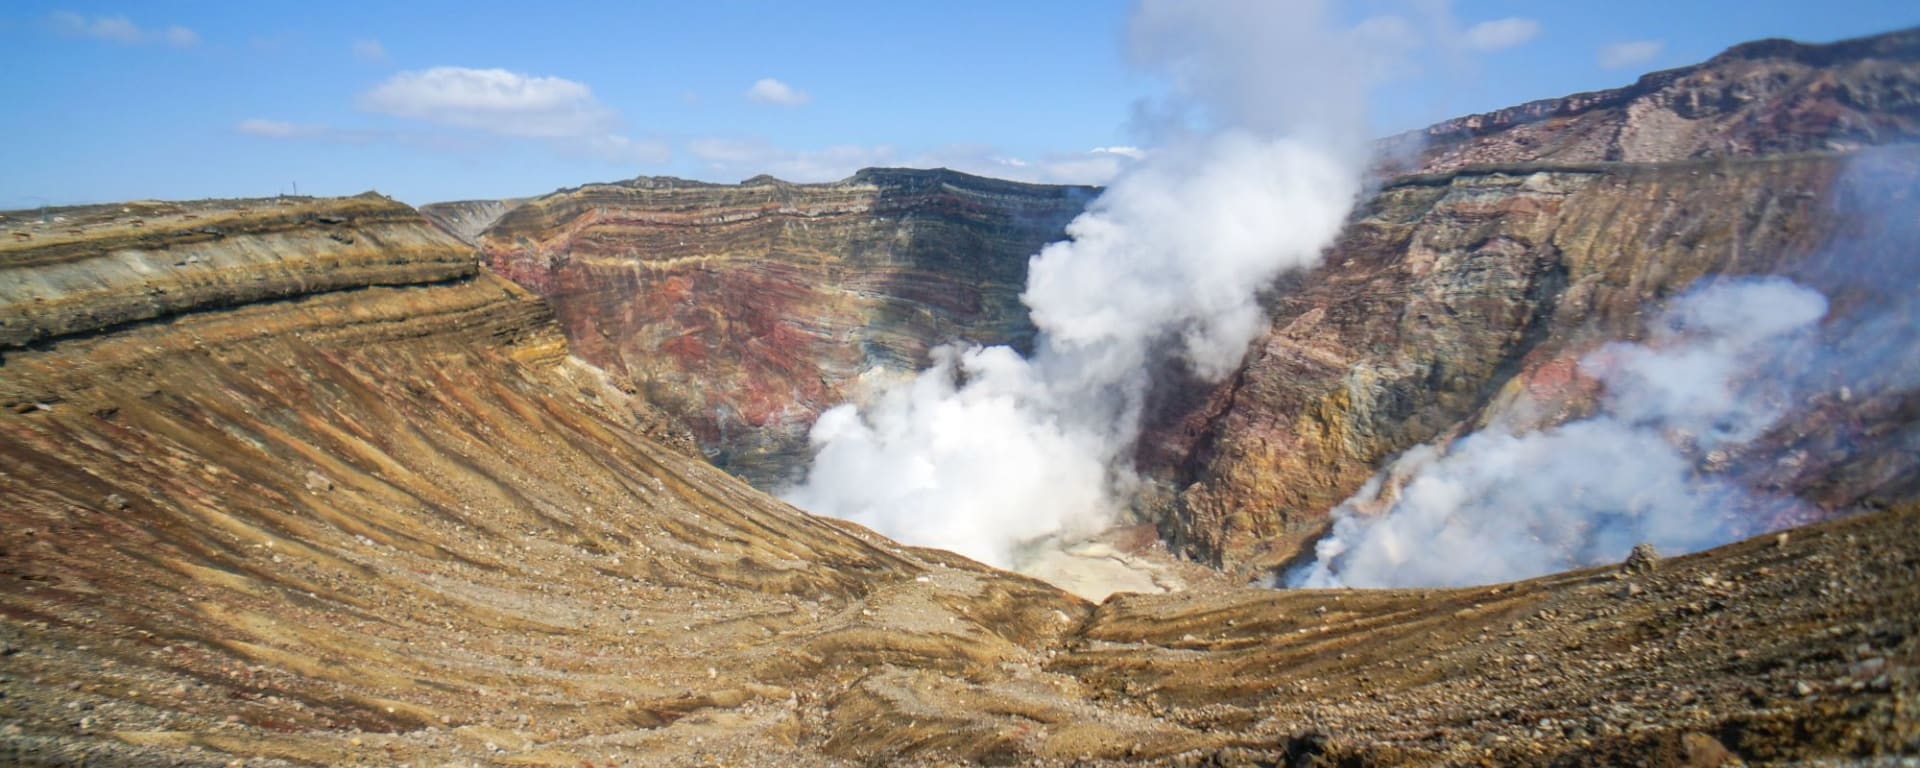 Circuit en groupe «Fuji» de Kyoto: Aso National Park: Steaming Crater of the Mount Naka